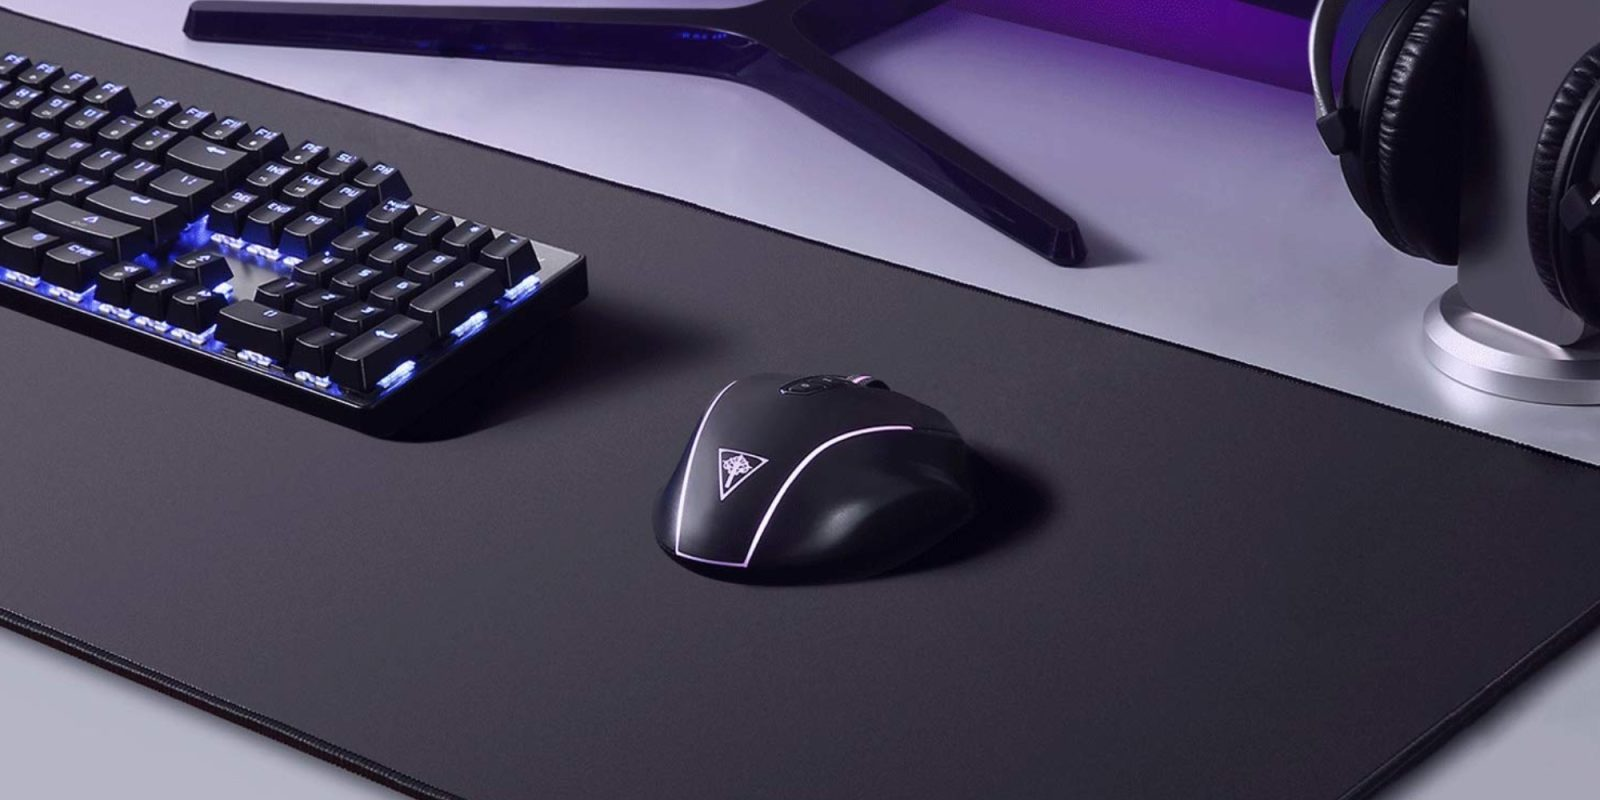 This highly-rated XXL gaming mousepad is a must-have at just $12 (40% off)